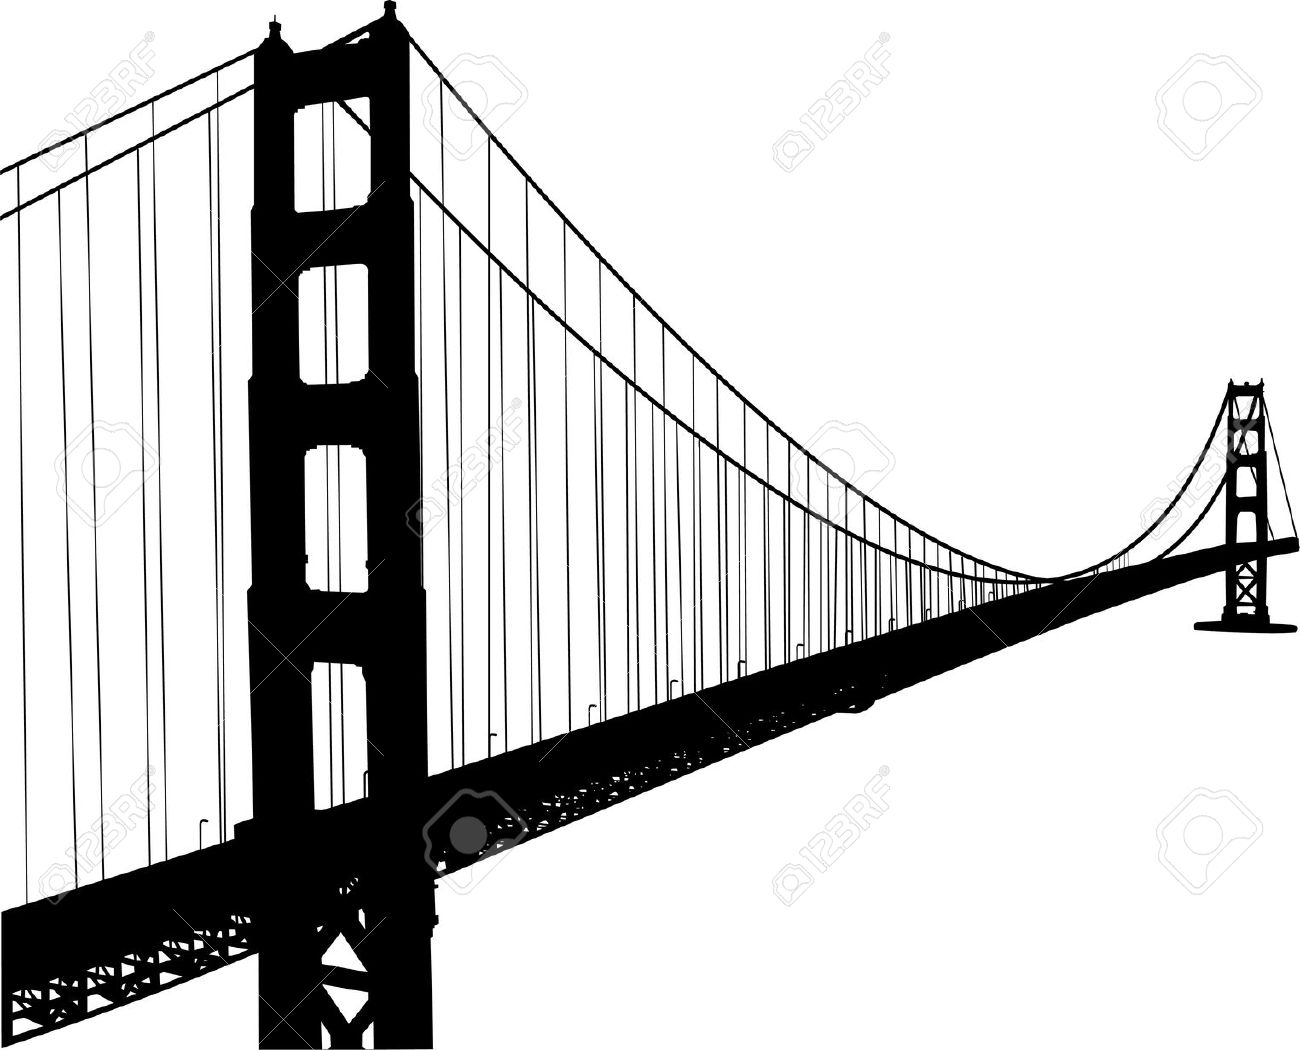 Golden Gate clipart #16, Download drawings